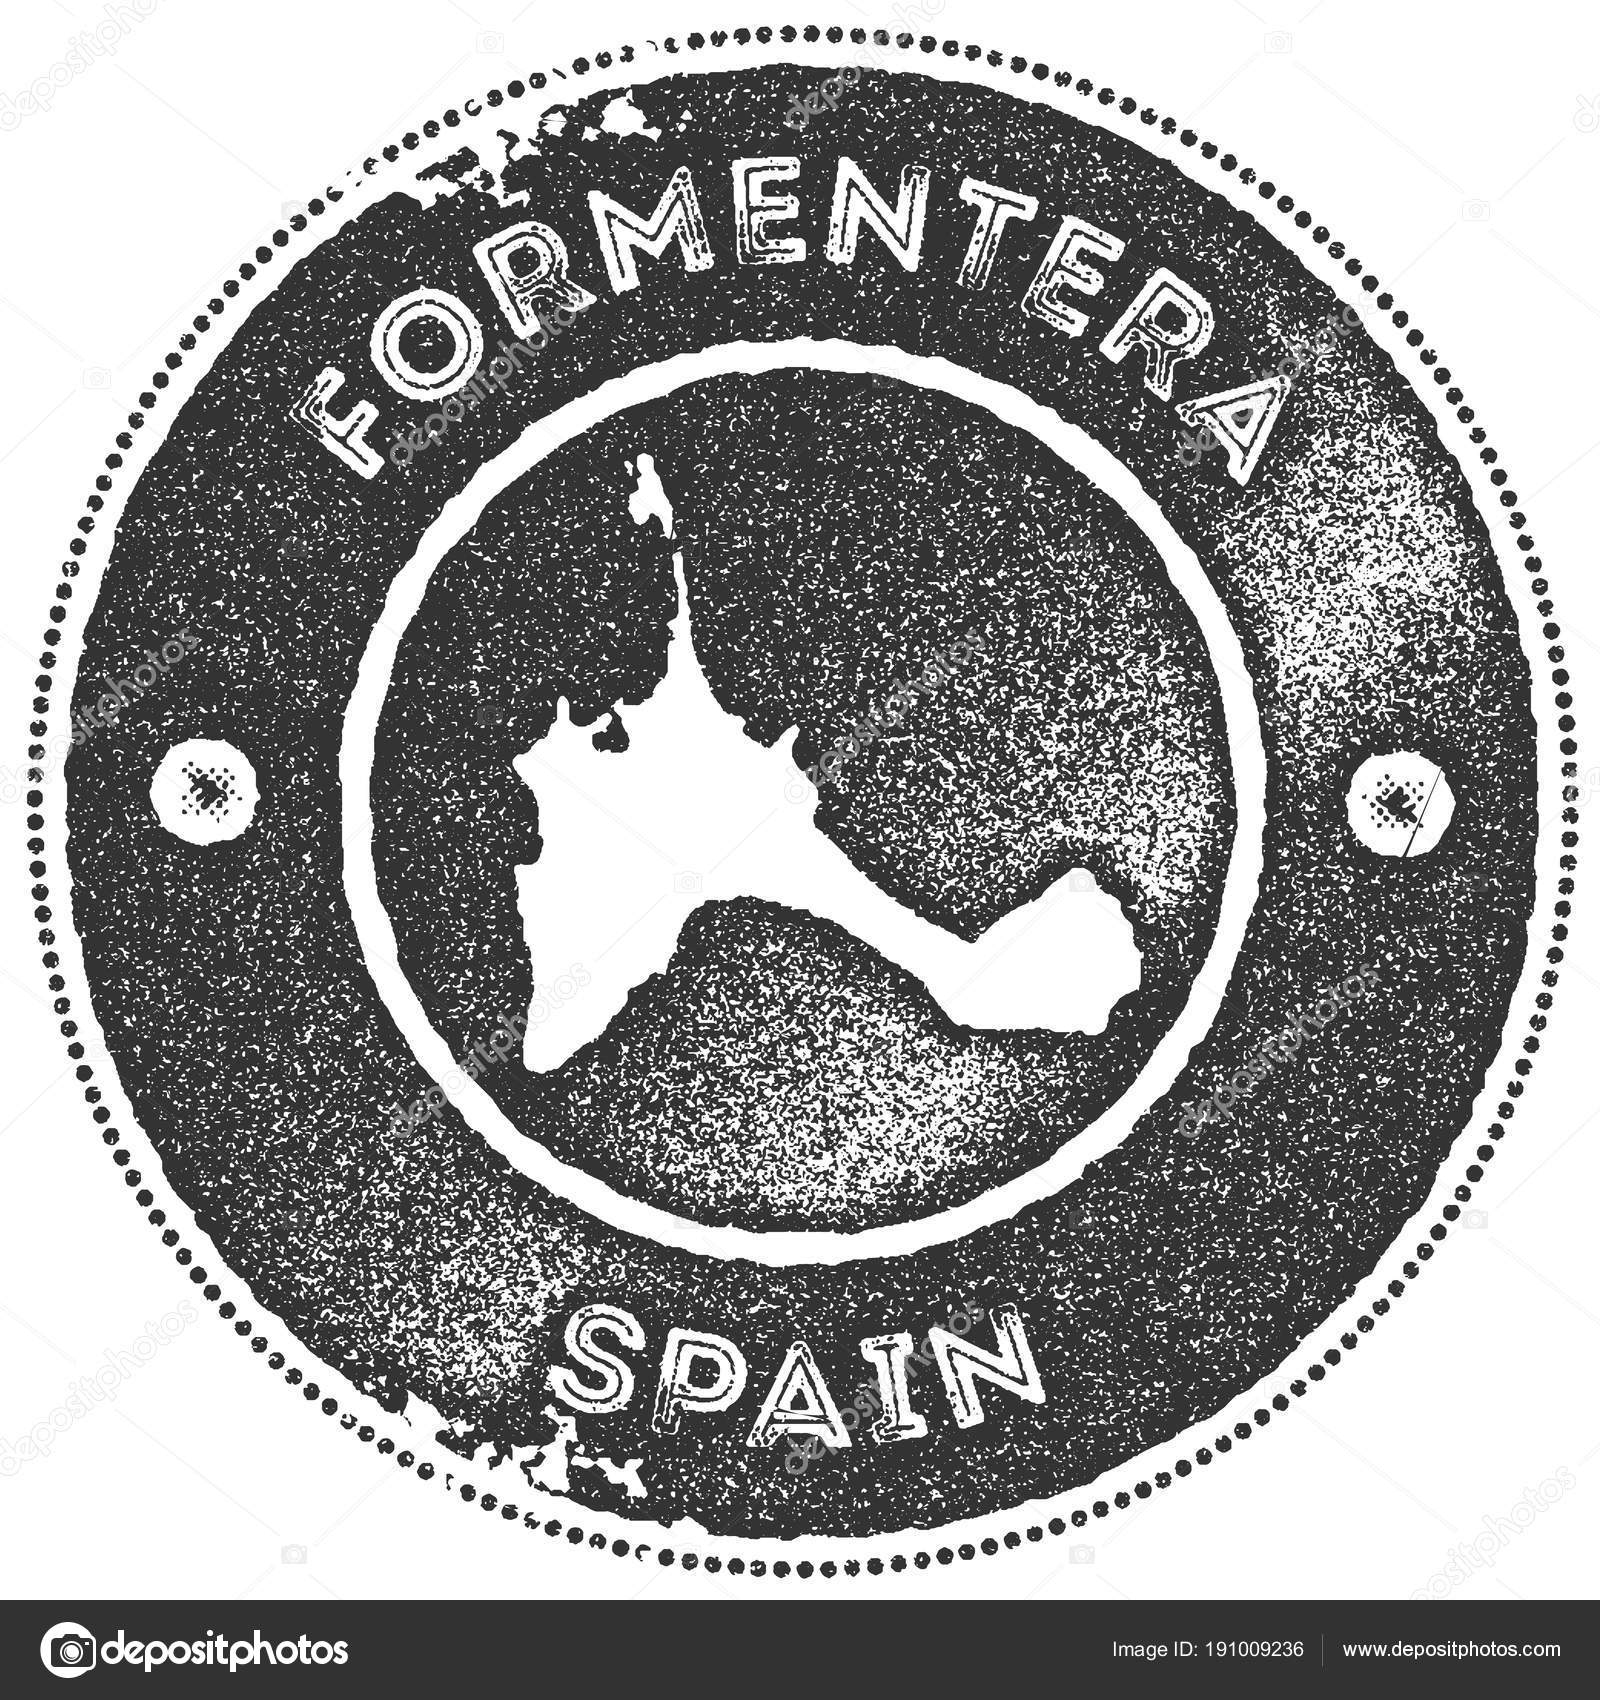 Formentera map vintage stamp Retro style handmade label badge or